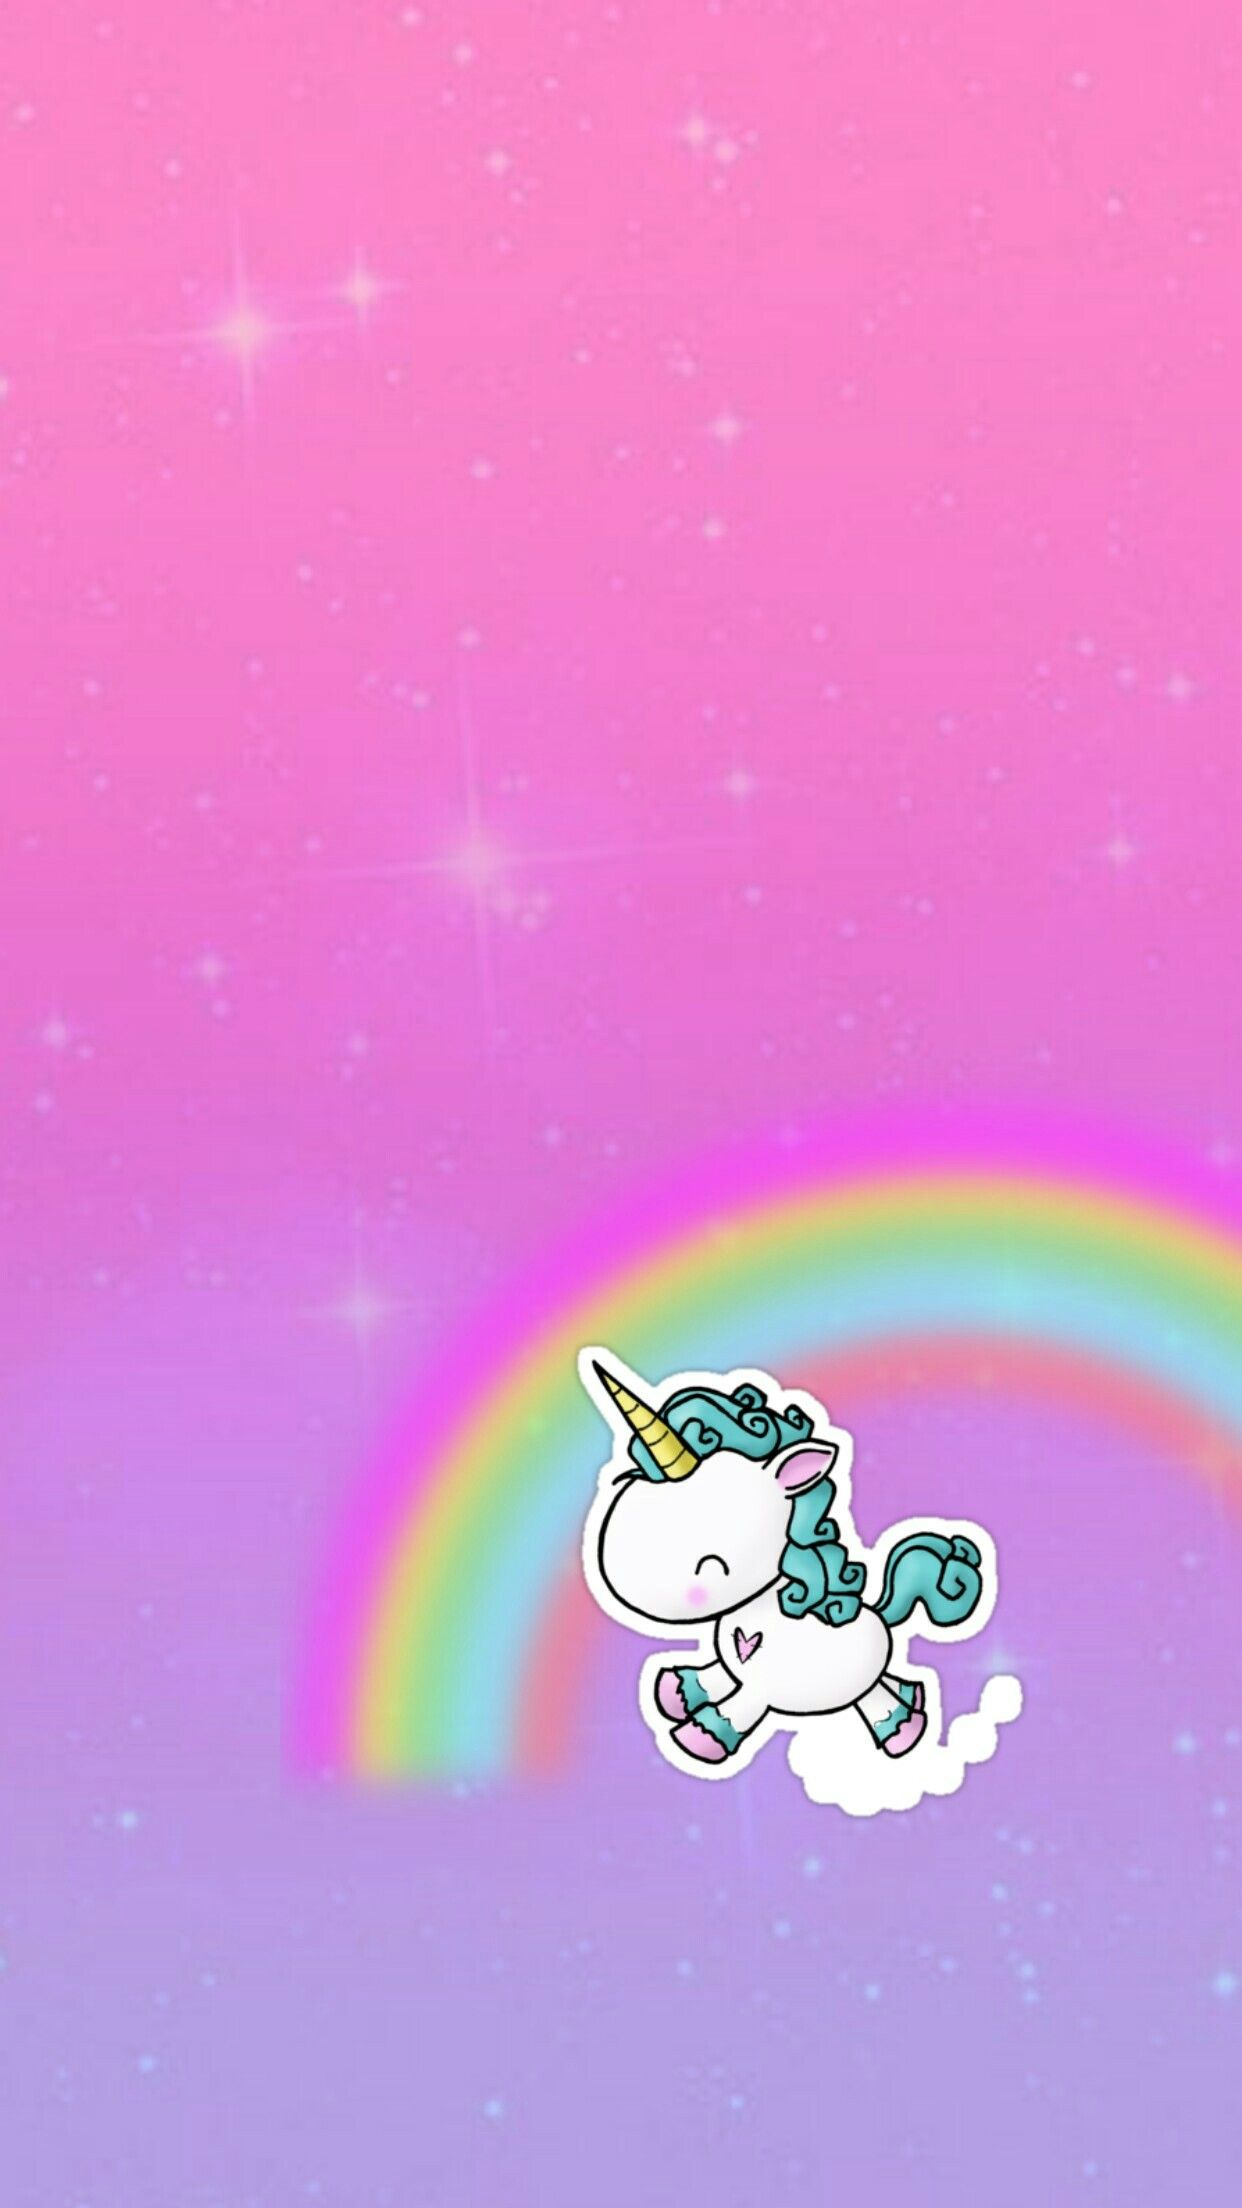 Http Www Prettywildstudio Tumblr Com Created By Mslilotter Please Tag Me On Instagram If You Use These Unicorn Wallpaper Unicorn Backgrounds Kawaii Unicorn